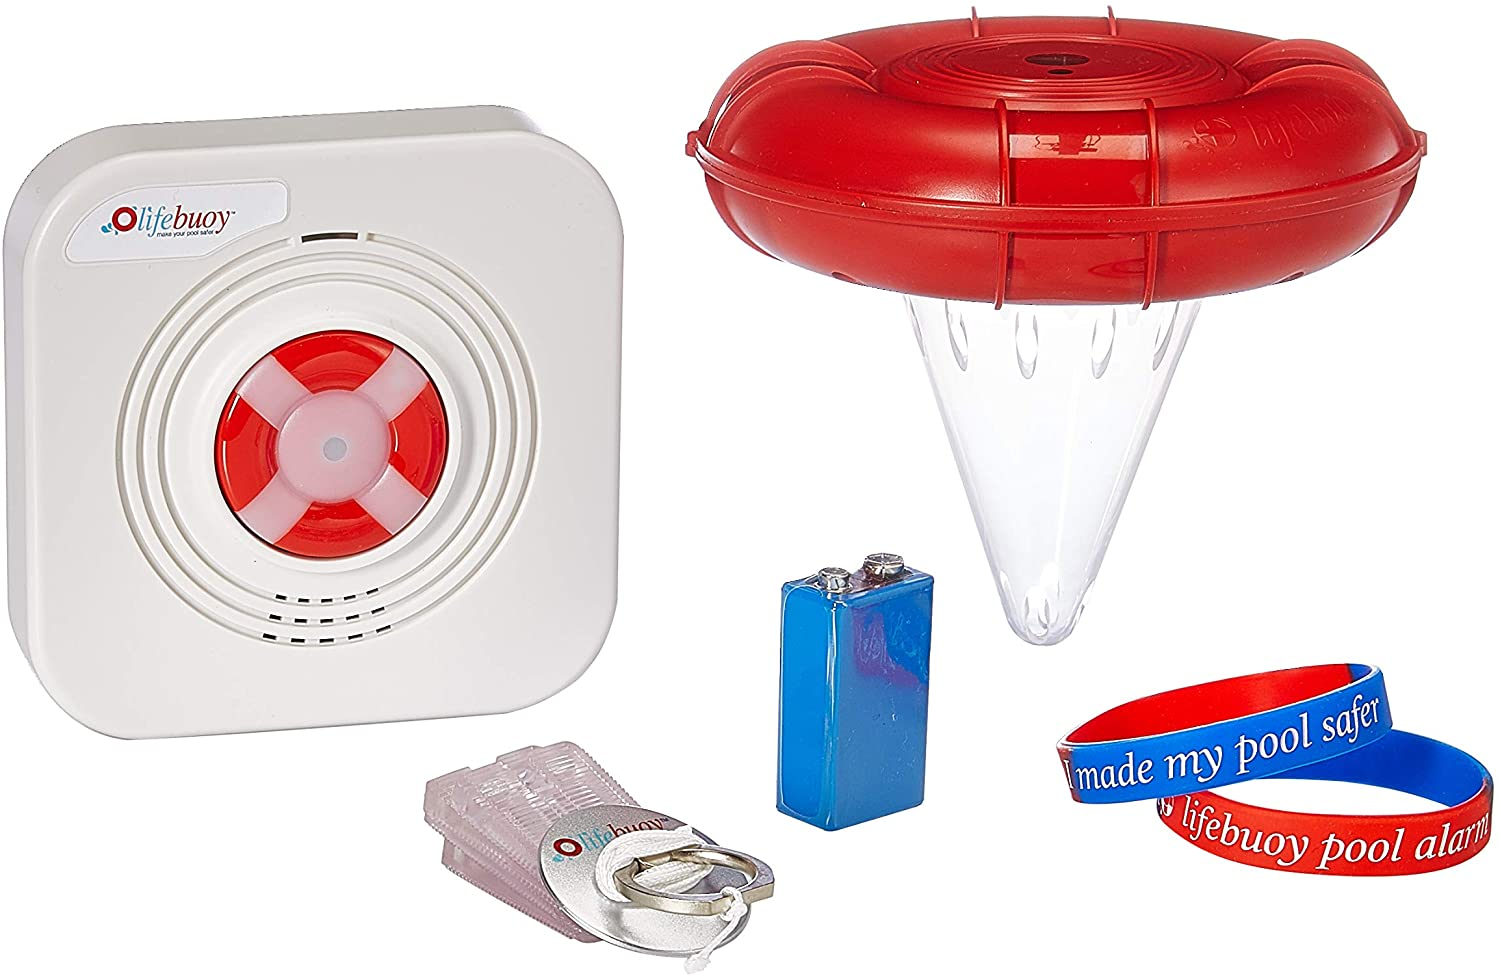 Lifebuoy Pool Alarm System - Pool Motion Sensor - Smart Pool Alarm That is Application Controlled. Powerful Sirens Blare at Poolside and Indoors, $249 @amazon.com